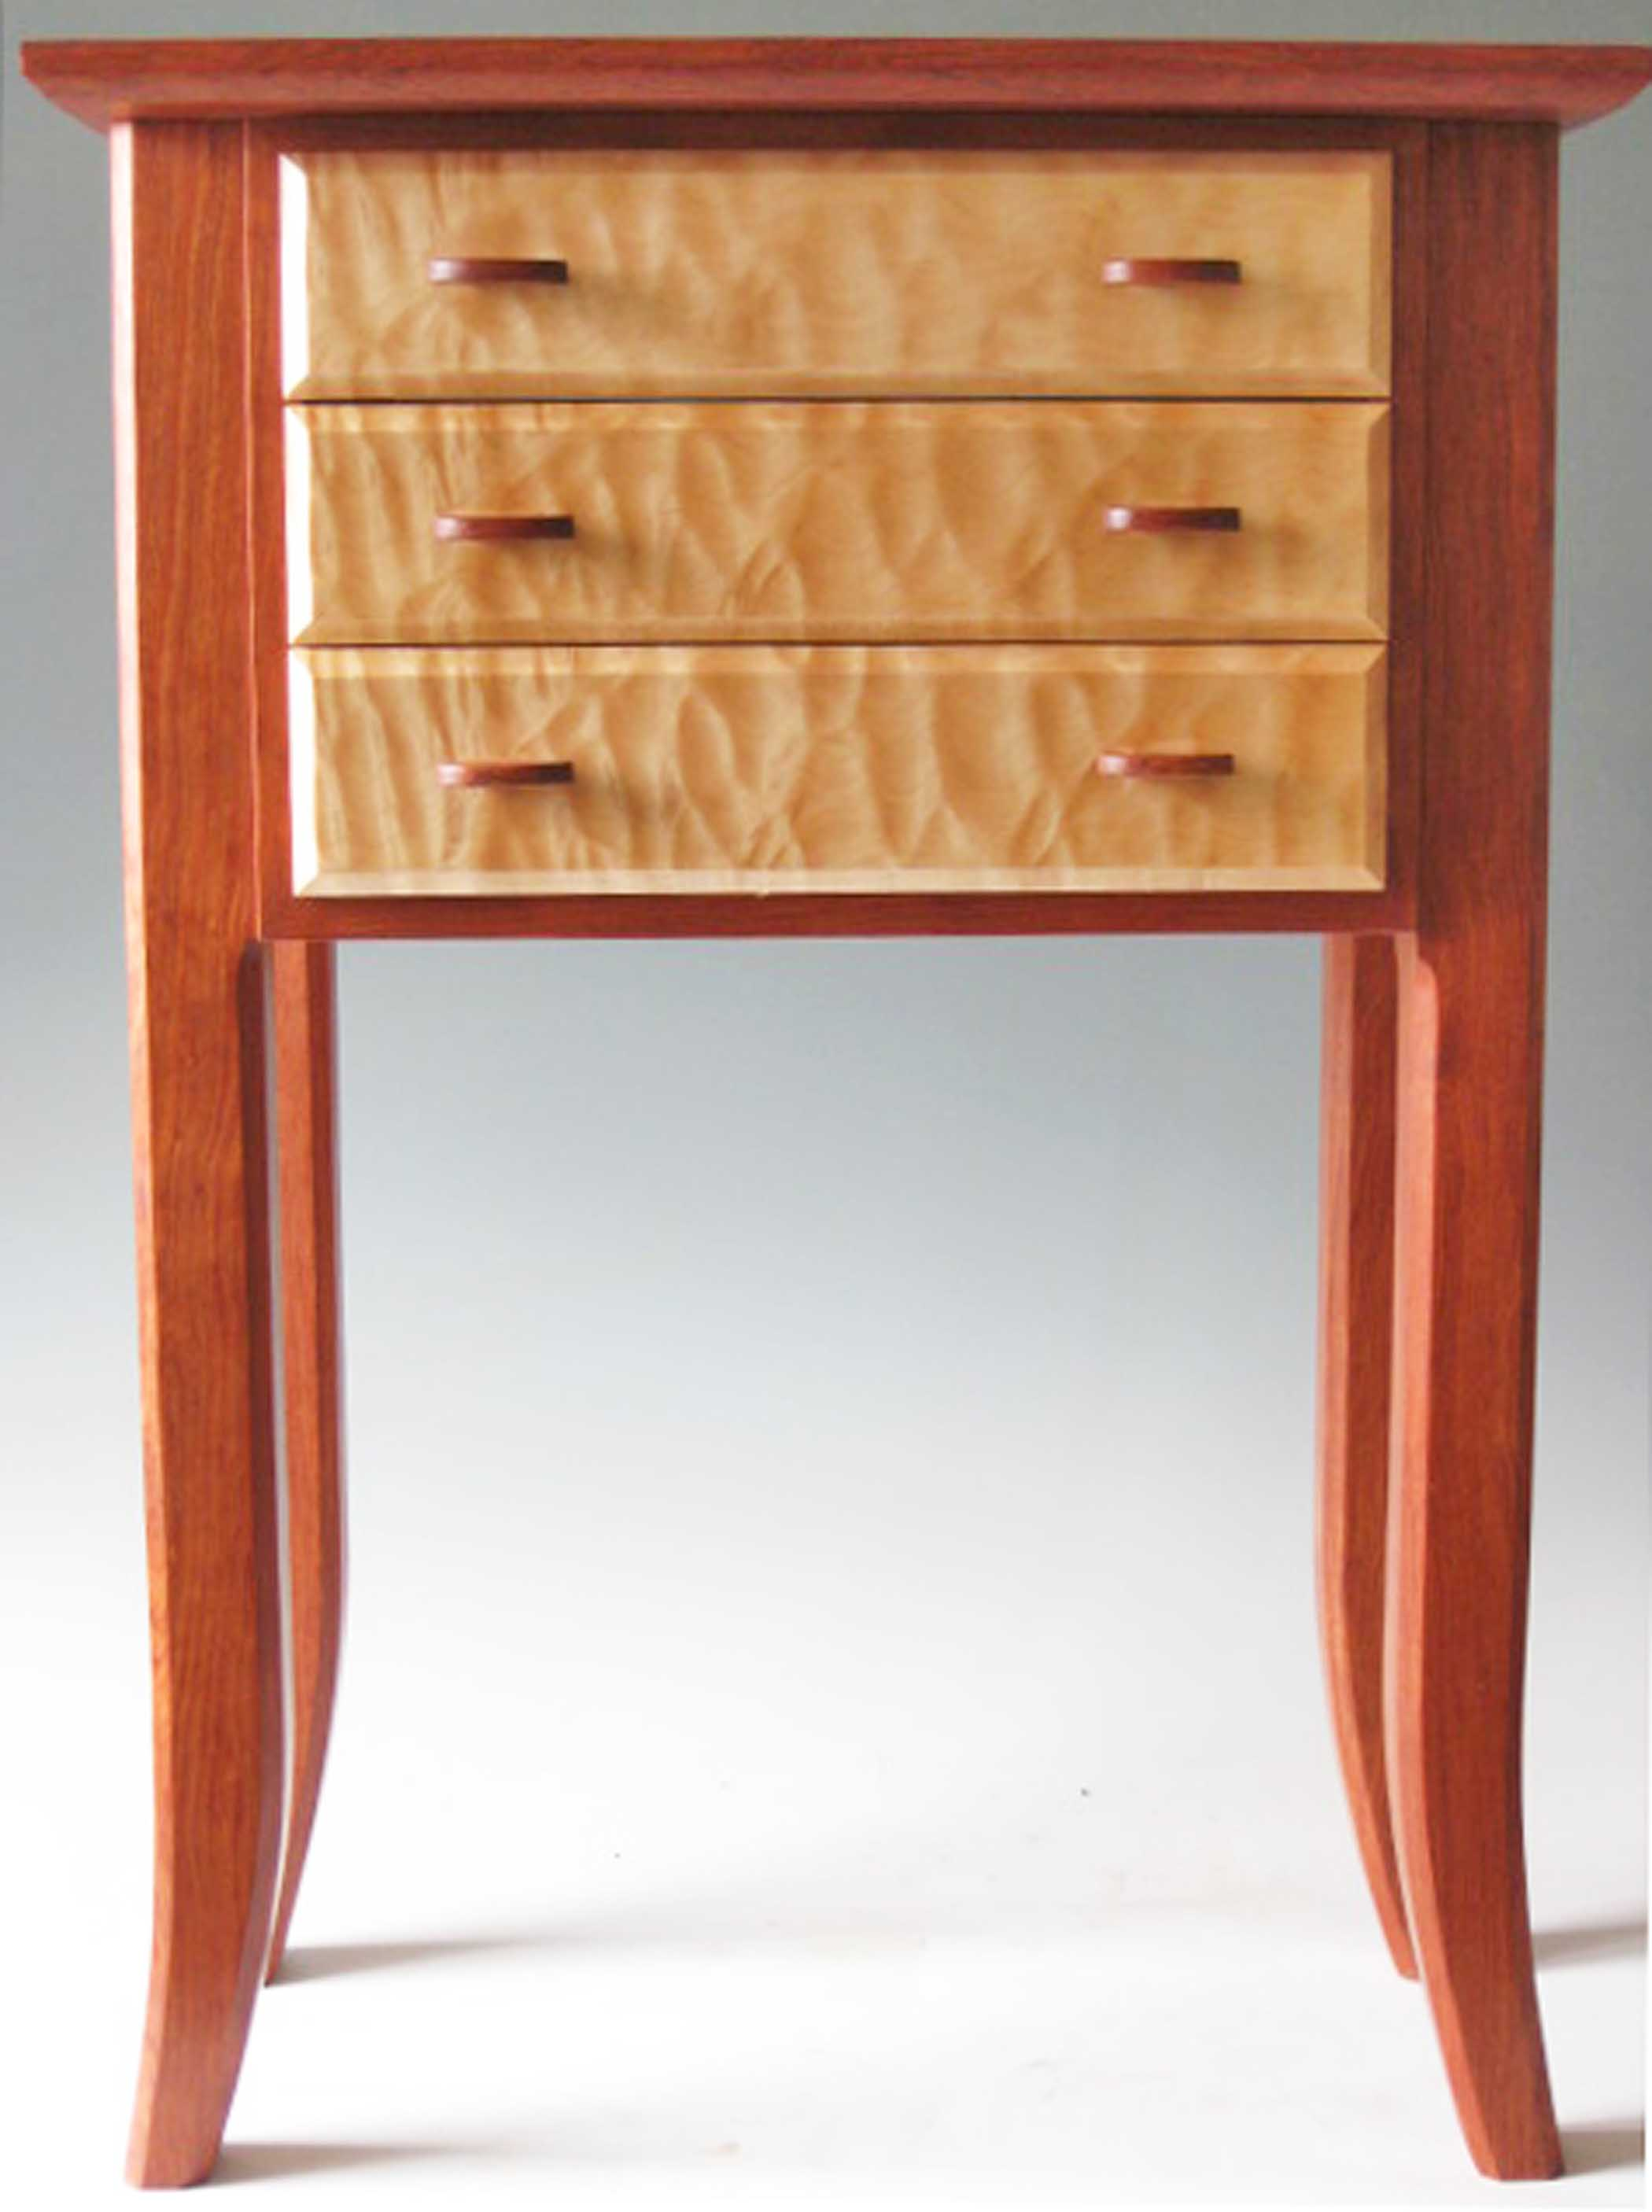 Beautiful handmade wooden table to hold armoire jewelry box